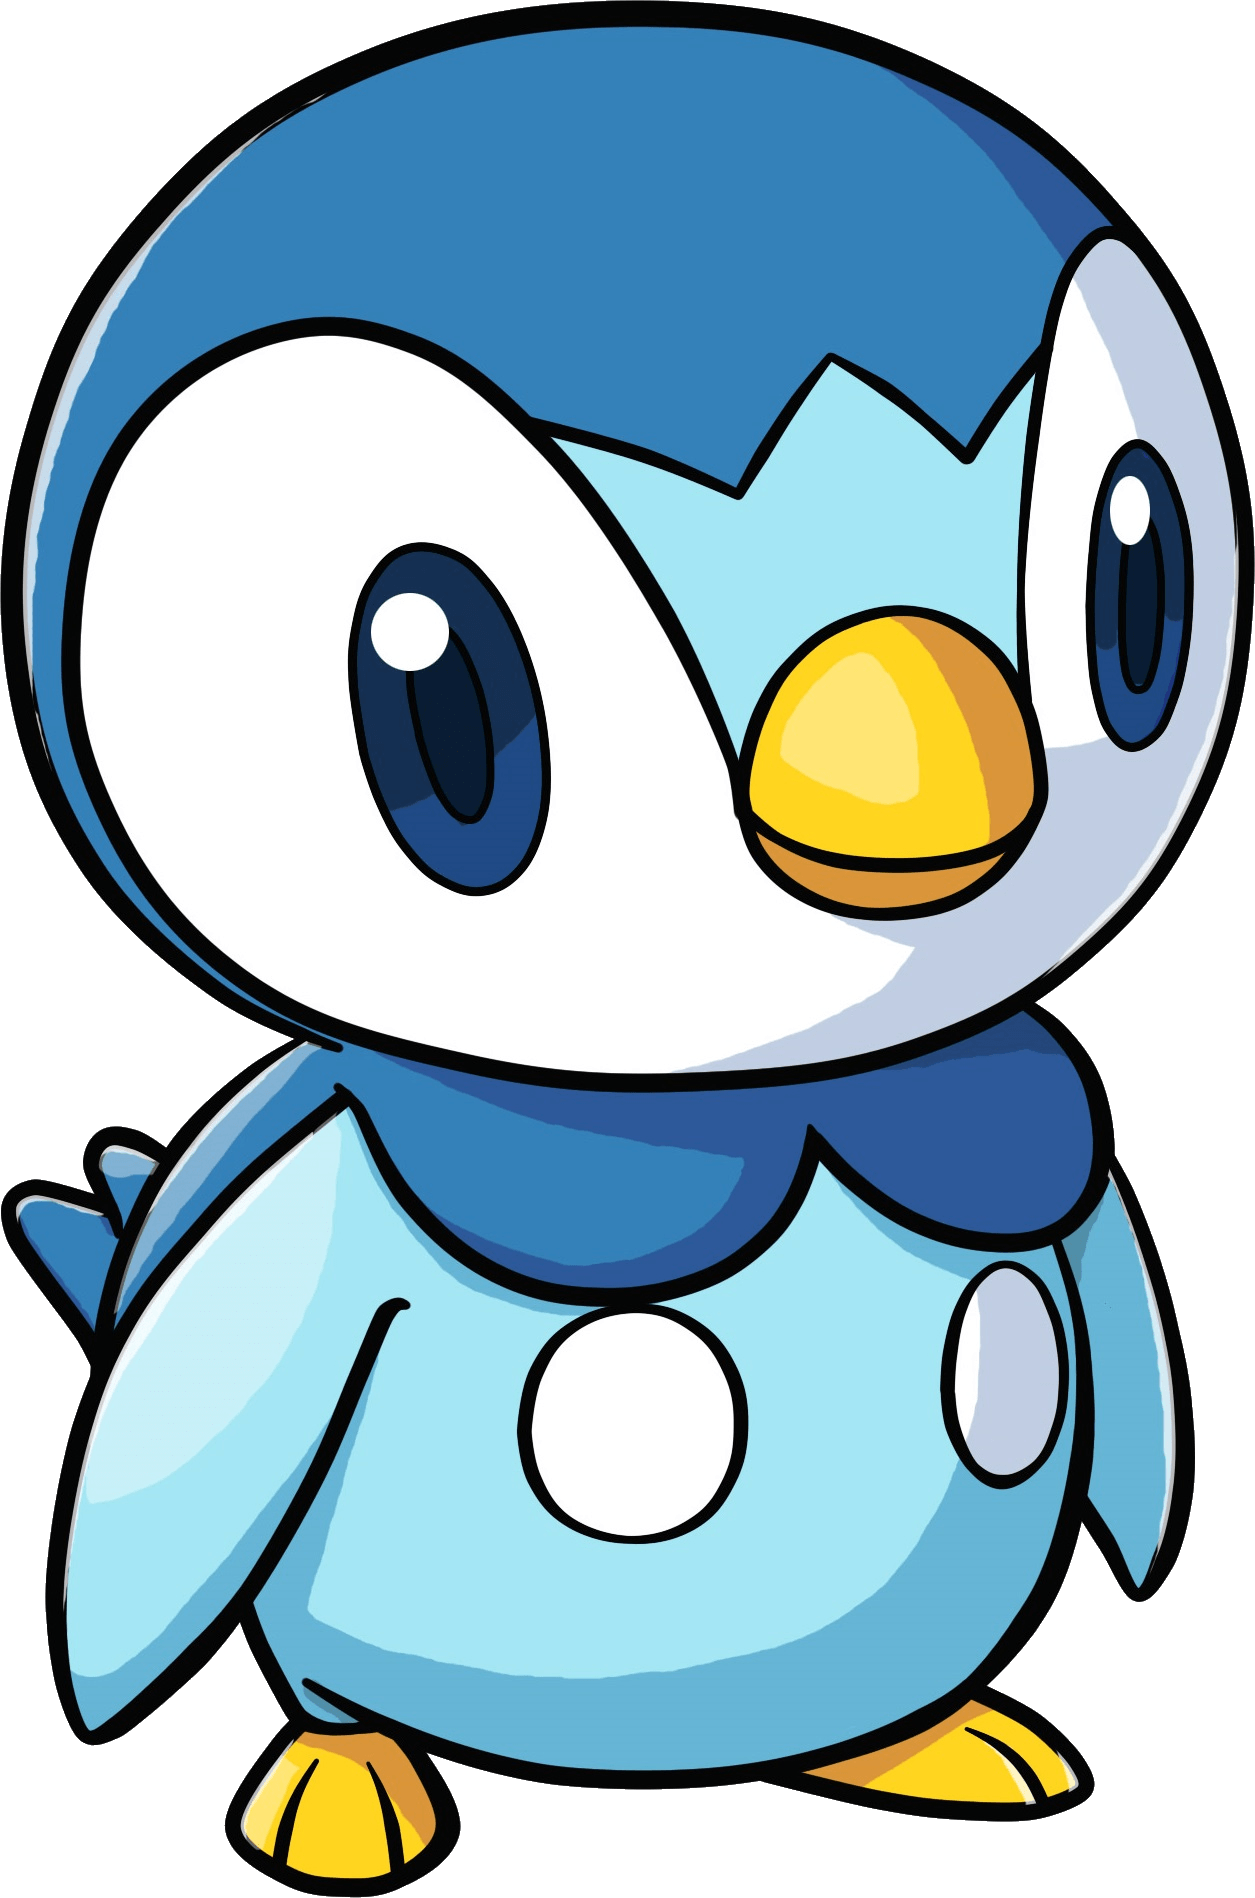 1255x1898 Piplup Pokemon Transparent Png